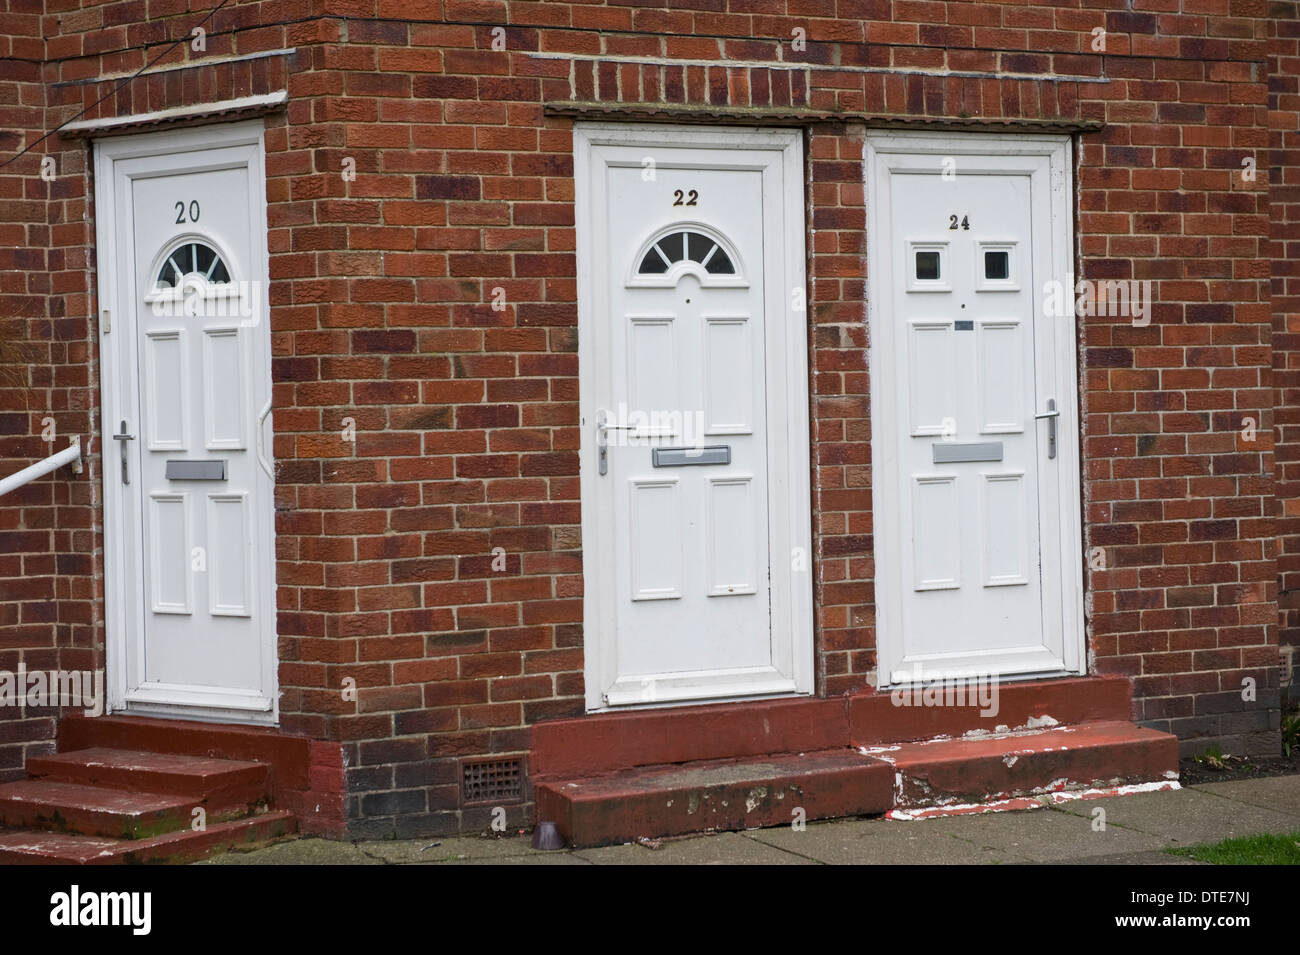 White number 20 22 \u0026 24 plastic front doors of houses in Scarborough North Yorkshire England UK & White number 20 22 \u0026 24 plastic front doors of houses in ...